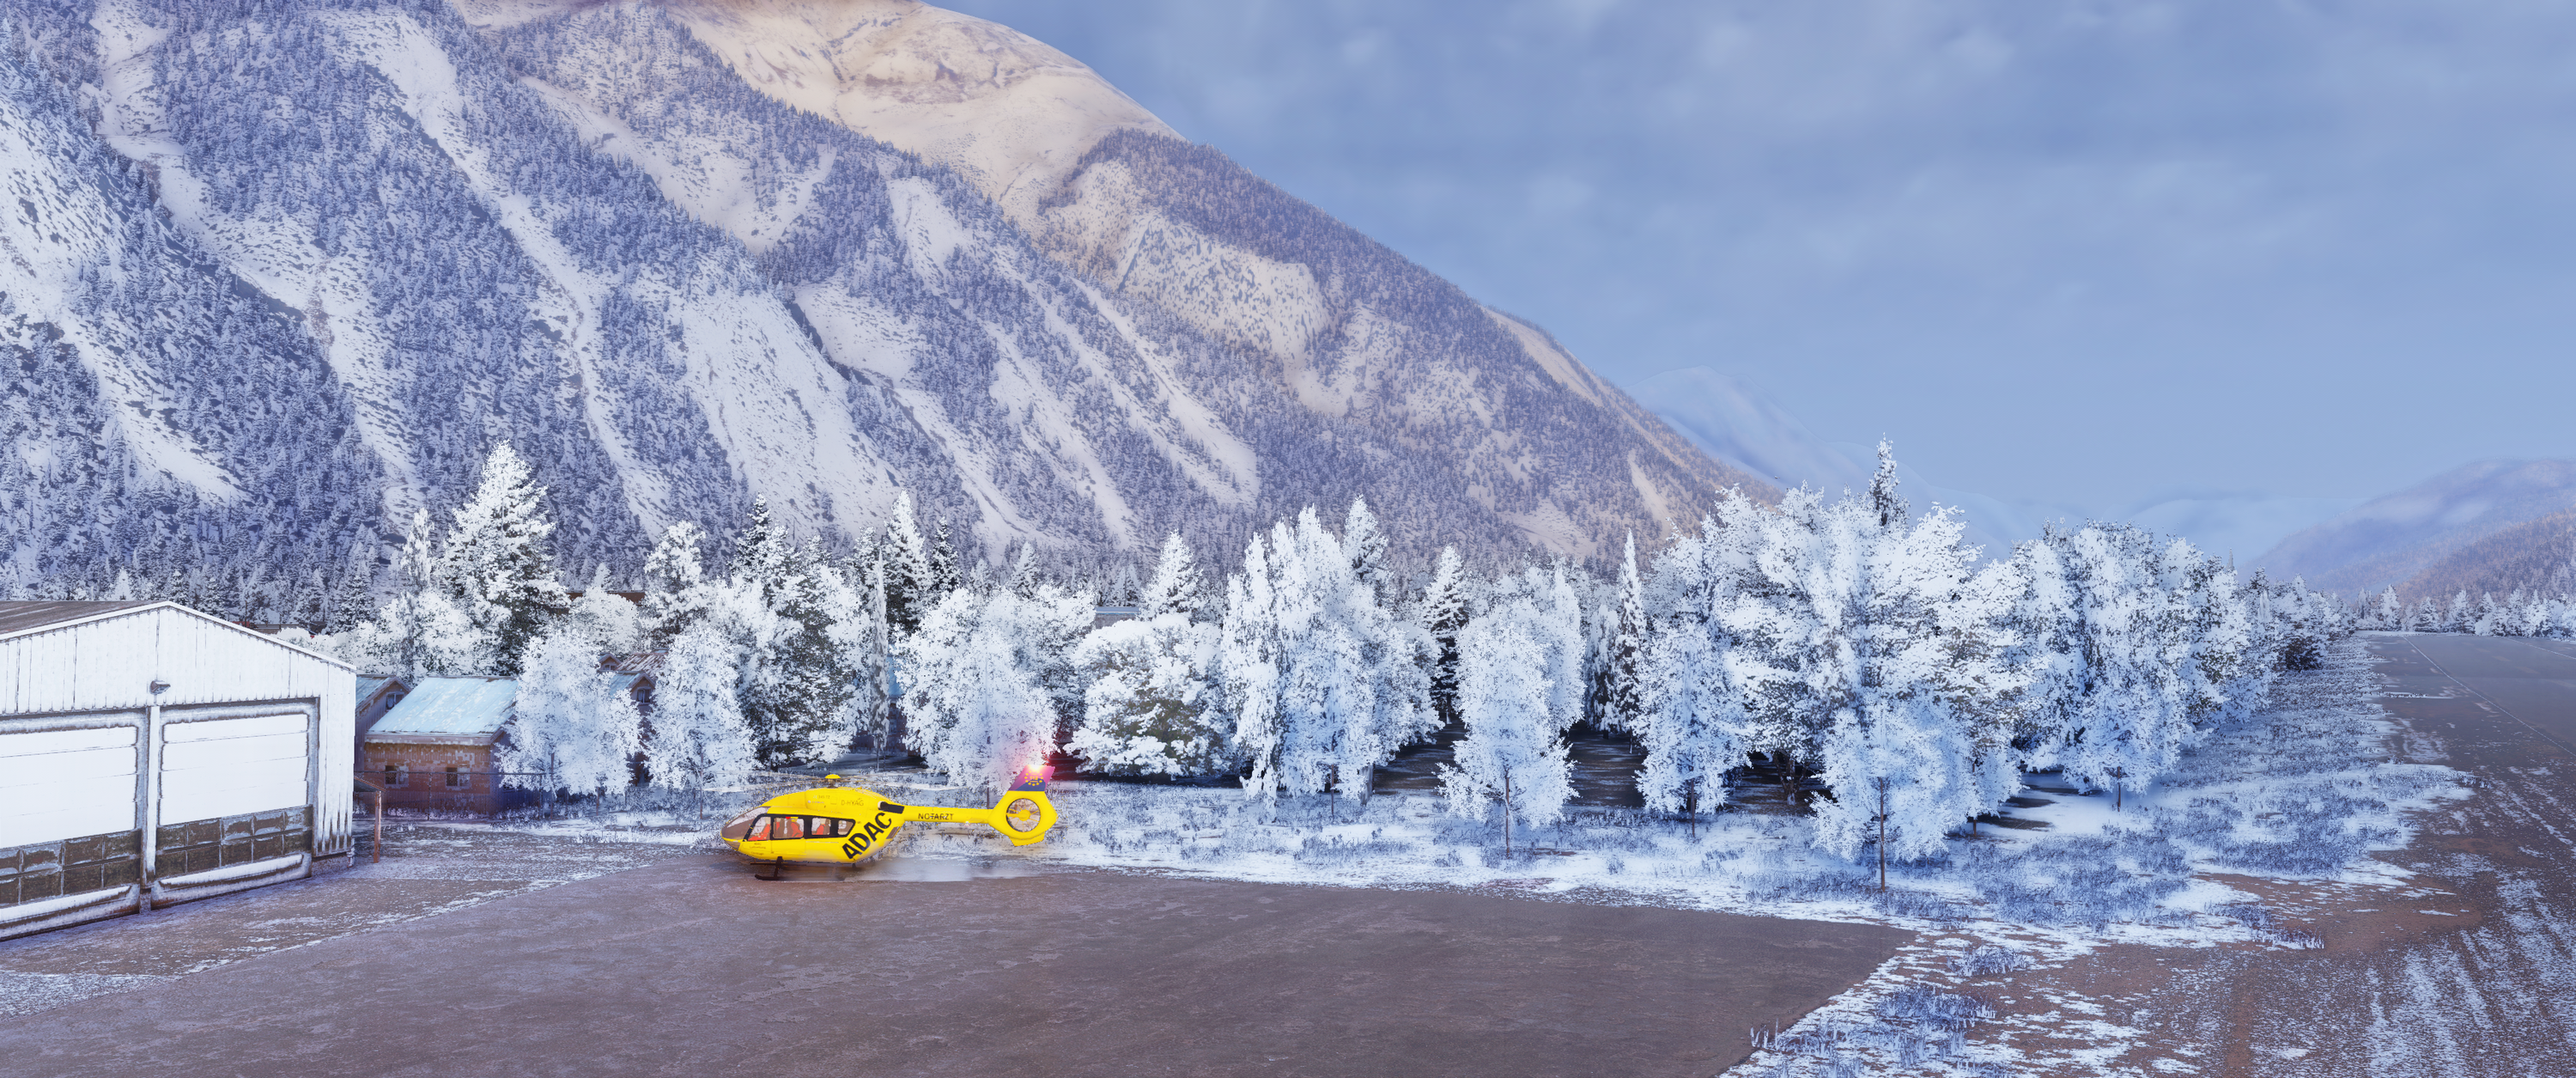 X-Plane Screenshot 2020.03.12 - 19.46.38.02.png